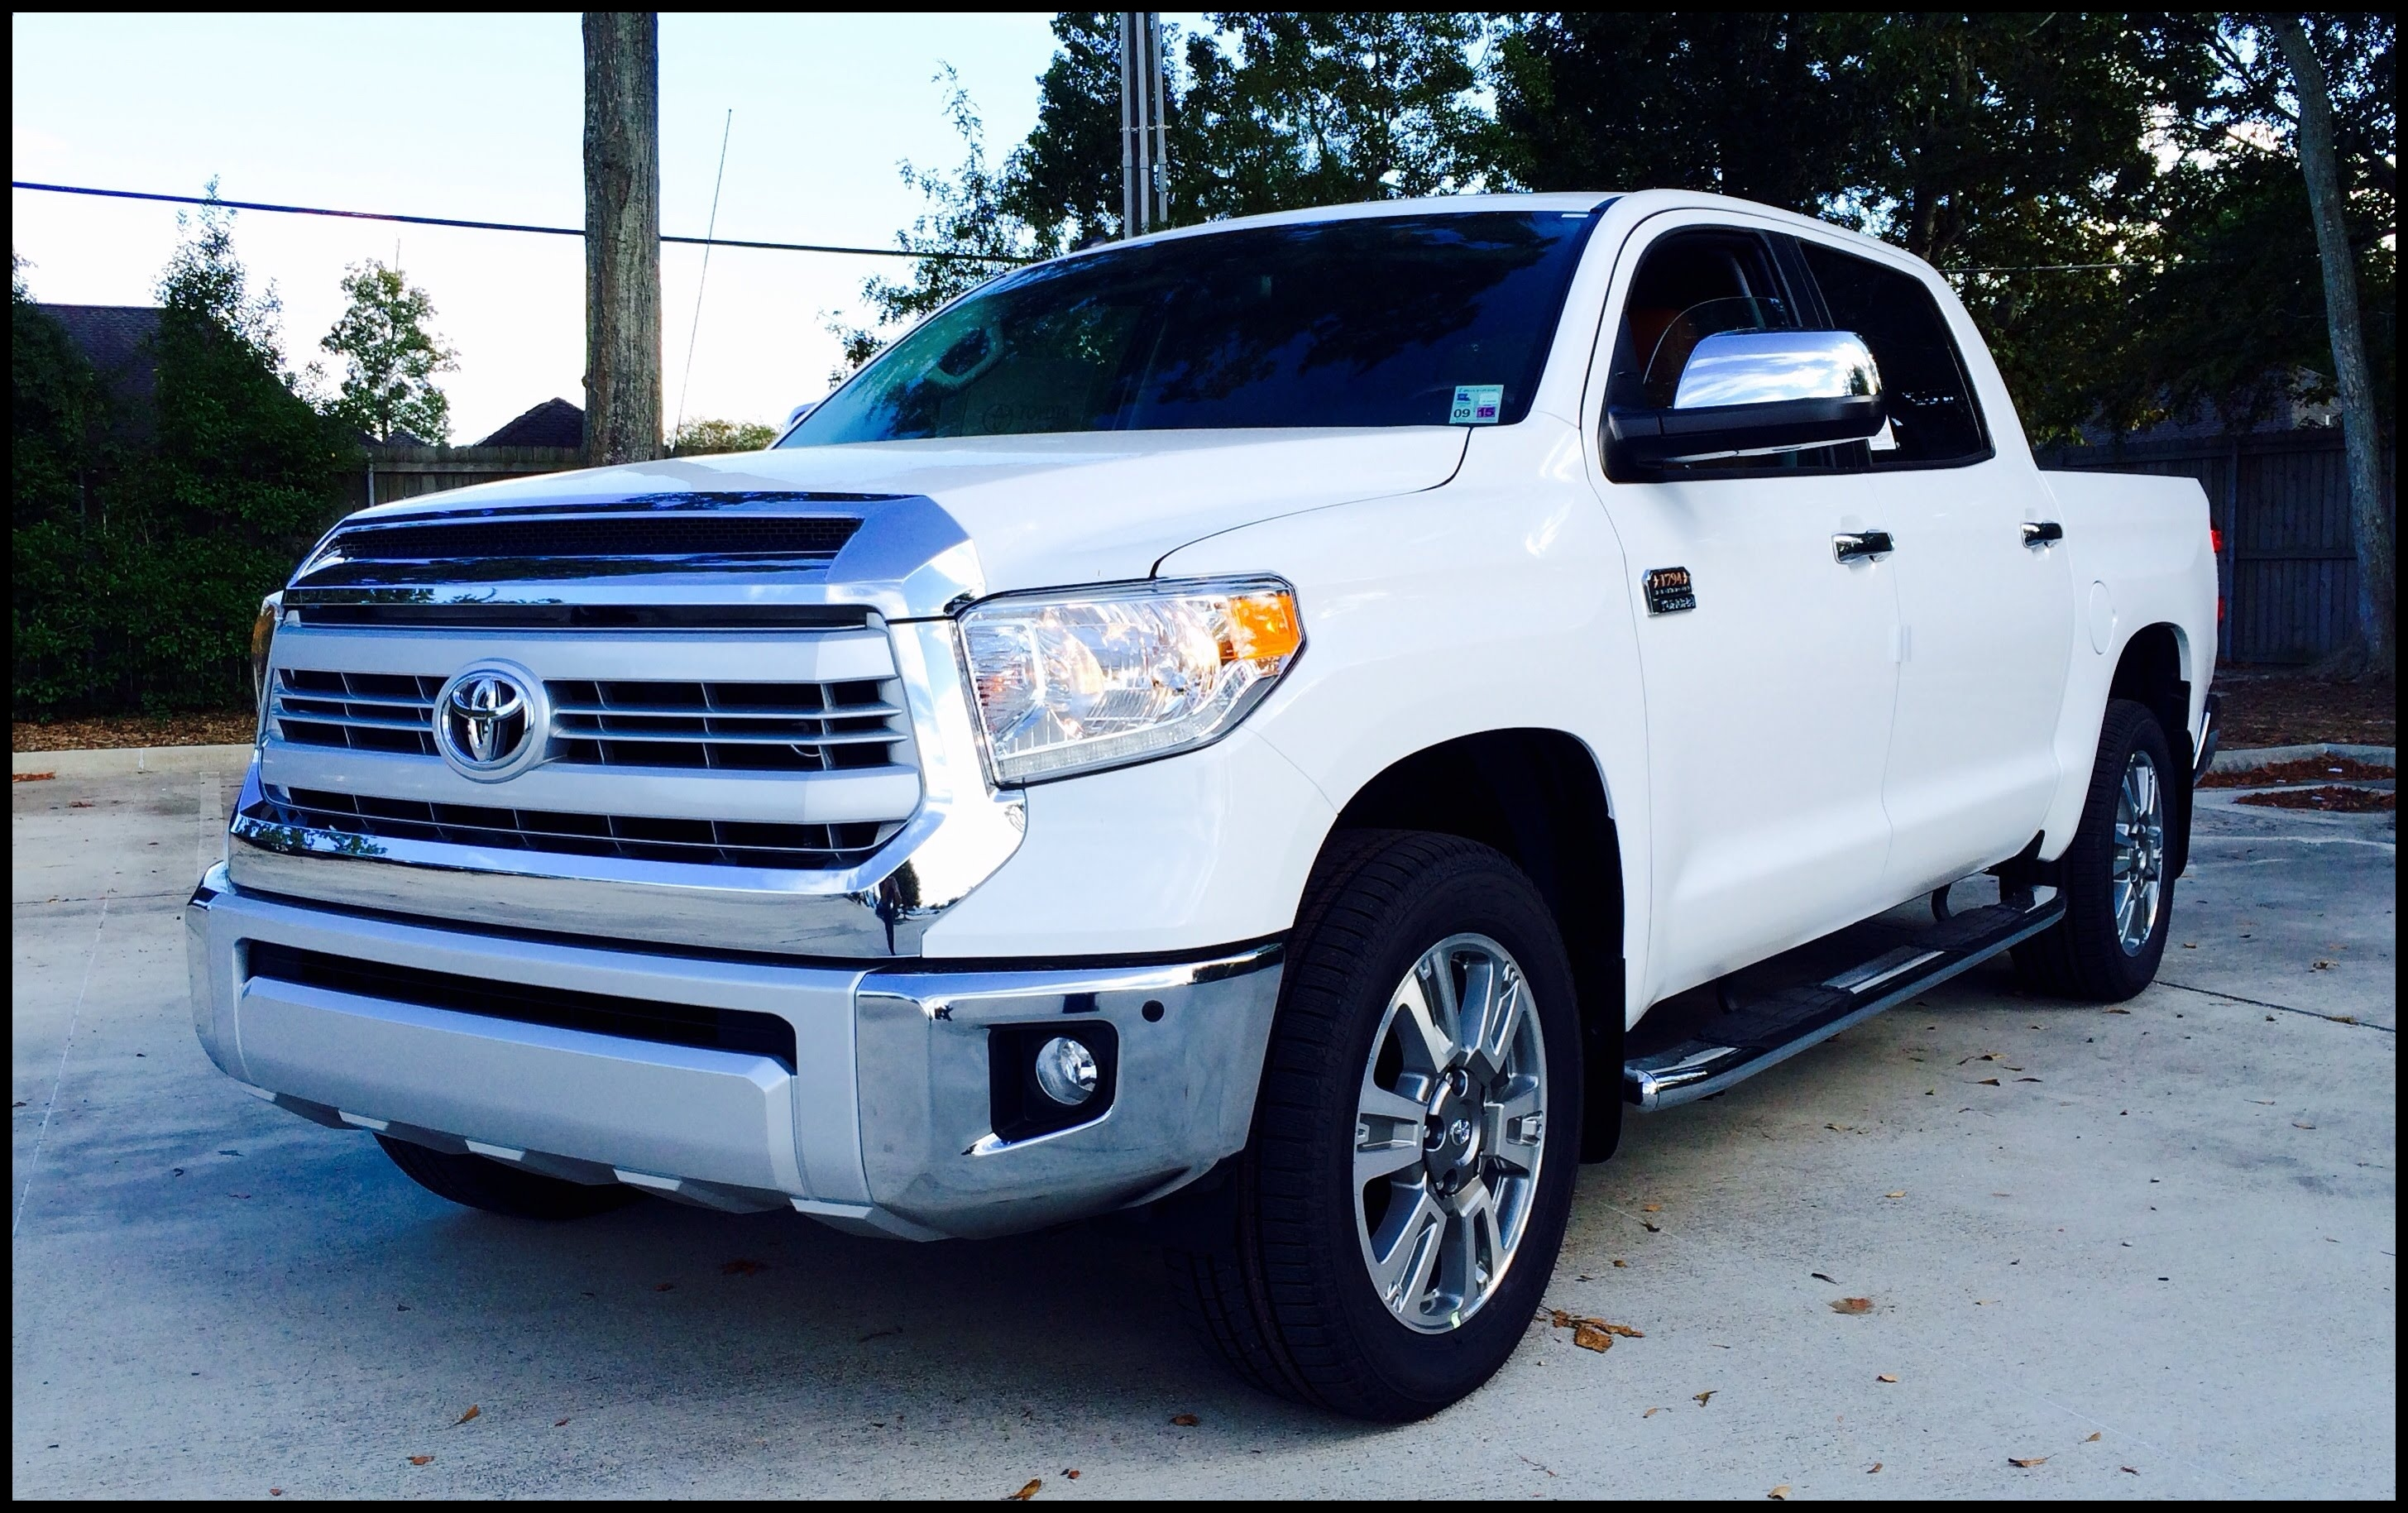 2015 2016 Toyota Tundra CrewMax 4x2 1794 Edition 5 7L V8 Full Review Start Up Exhaust